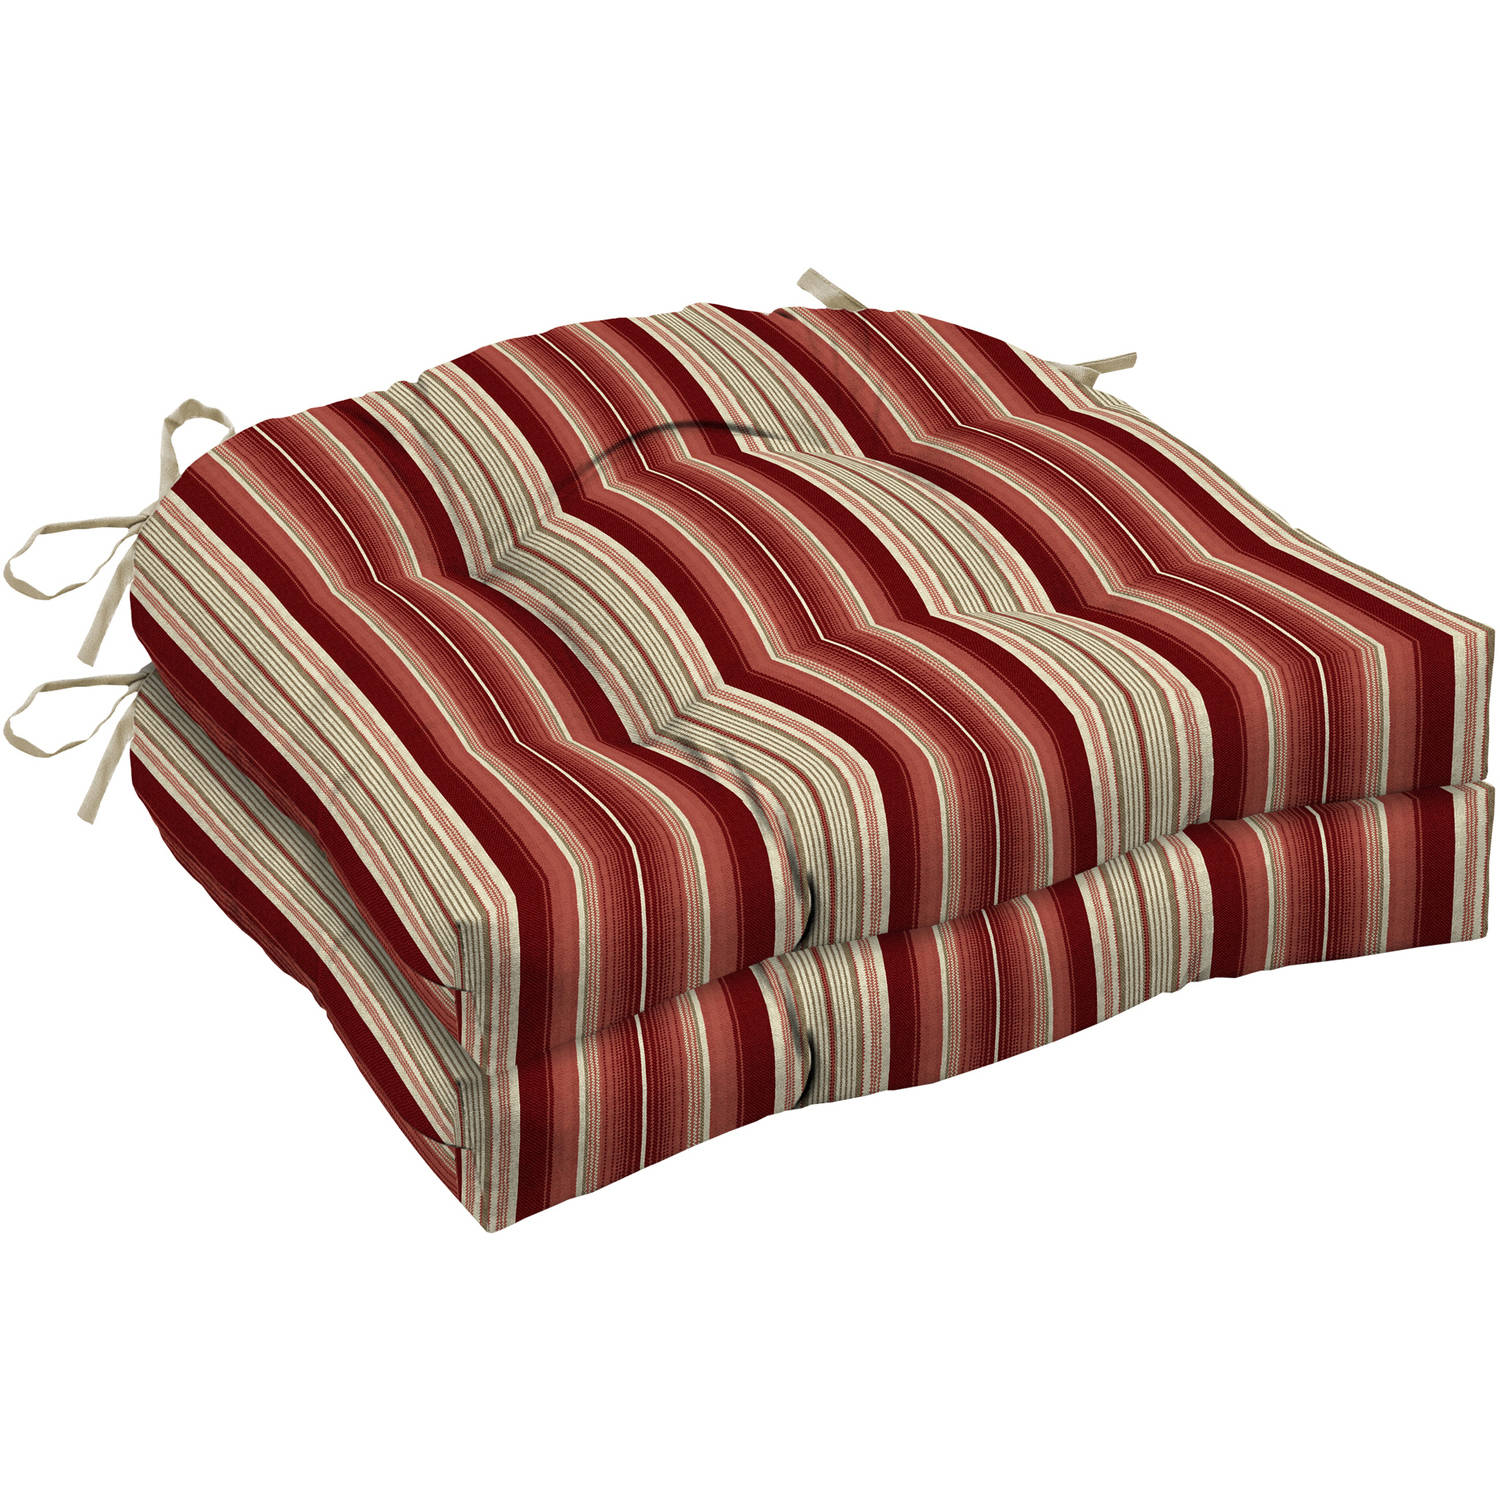 Better Homes and Gardens Outdoor Patio Wicker Seat Cushion, Set of Two, Multiple Patterns